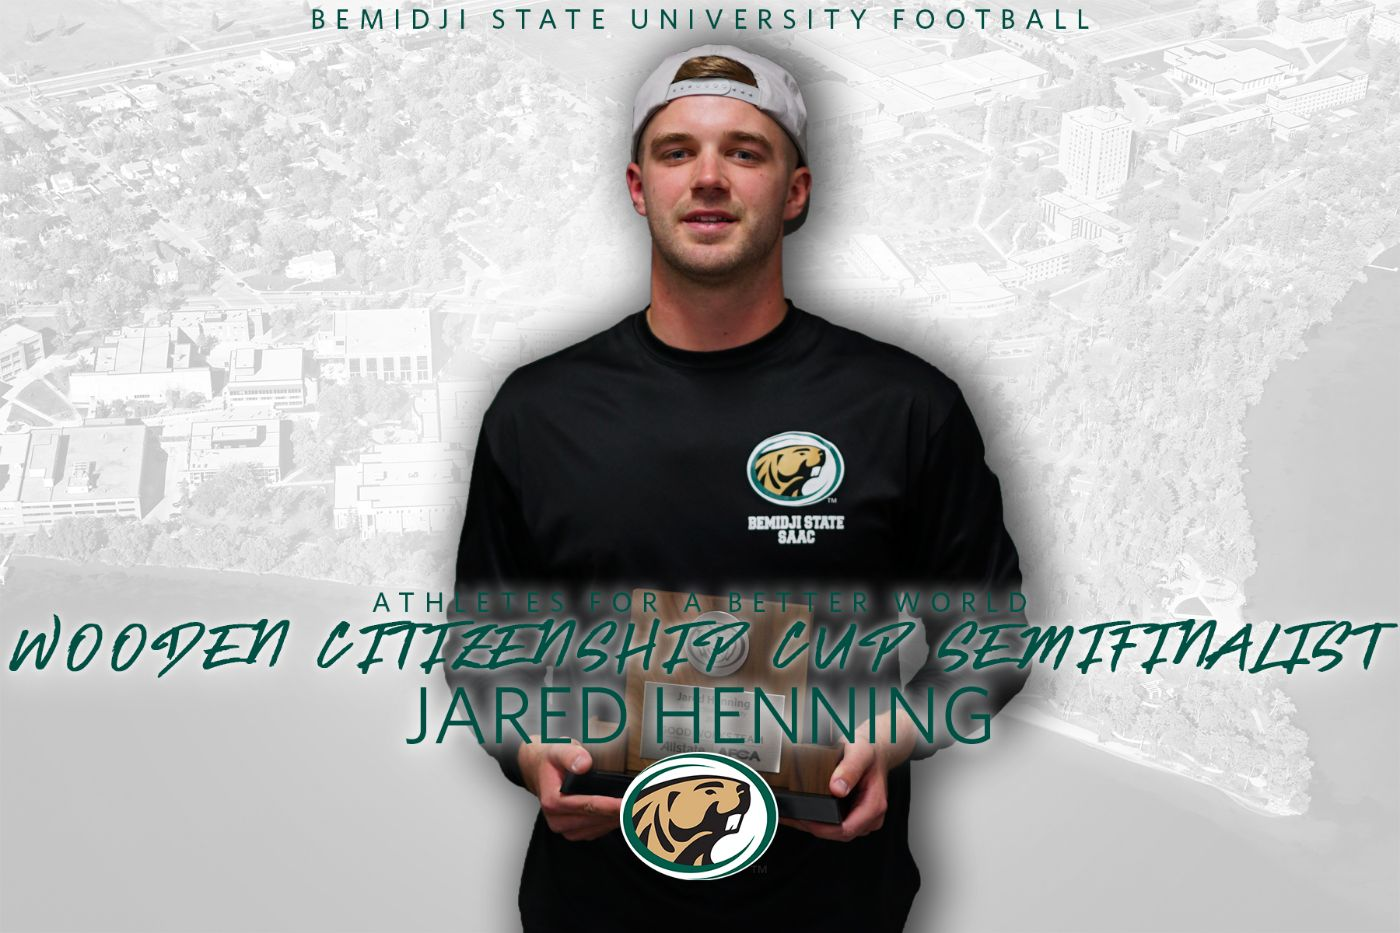 Henning recognized as top role model as Wooden Citizenship Cup semifinalist